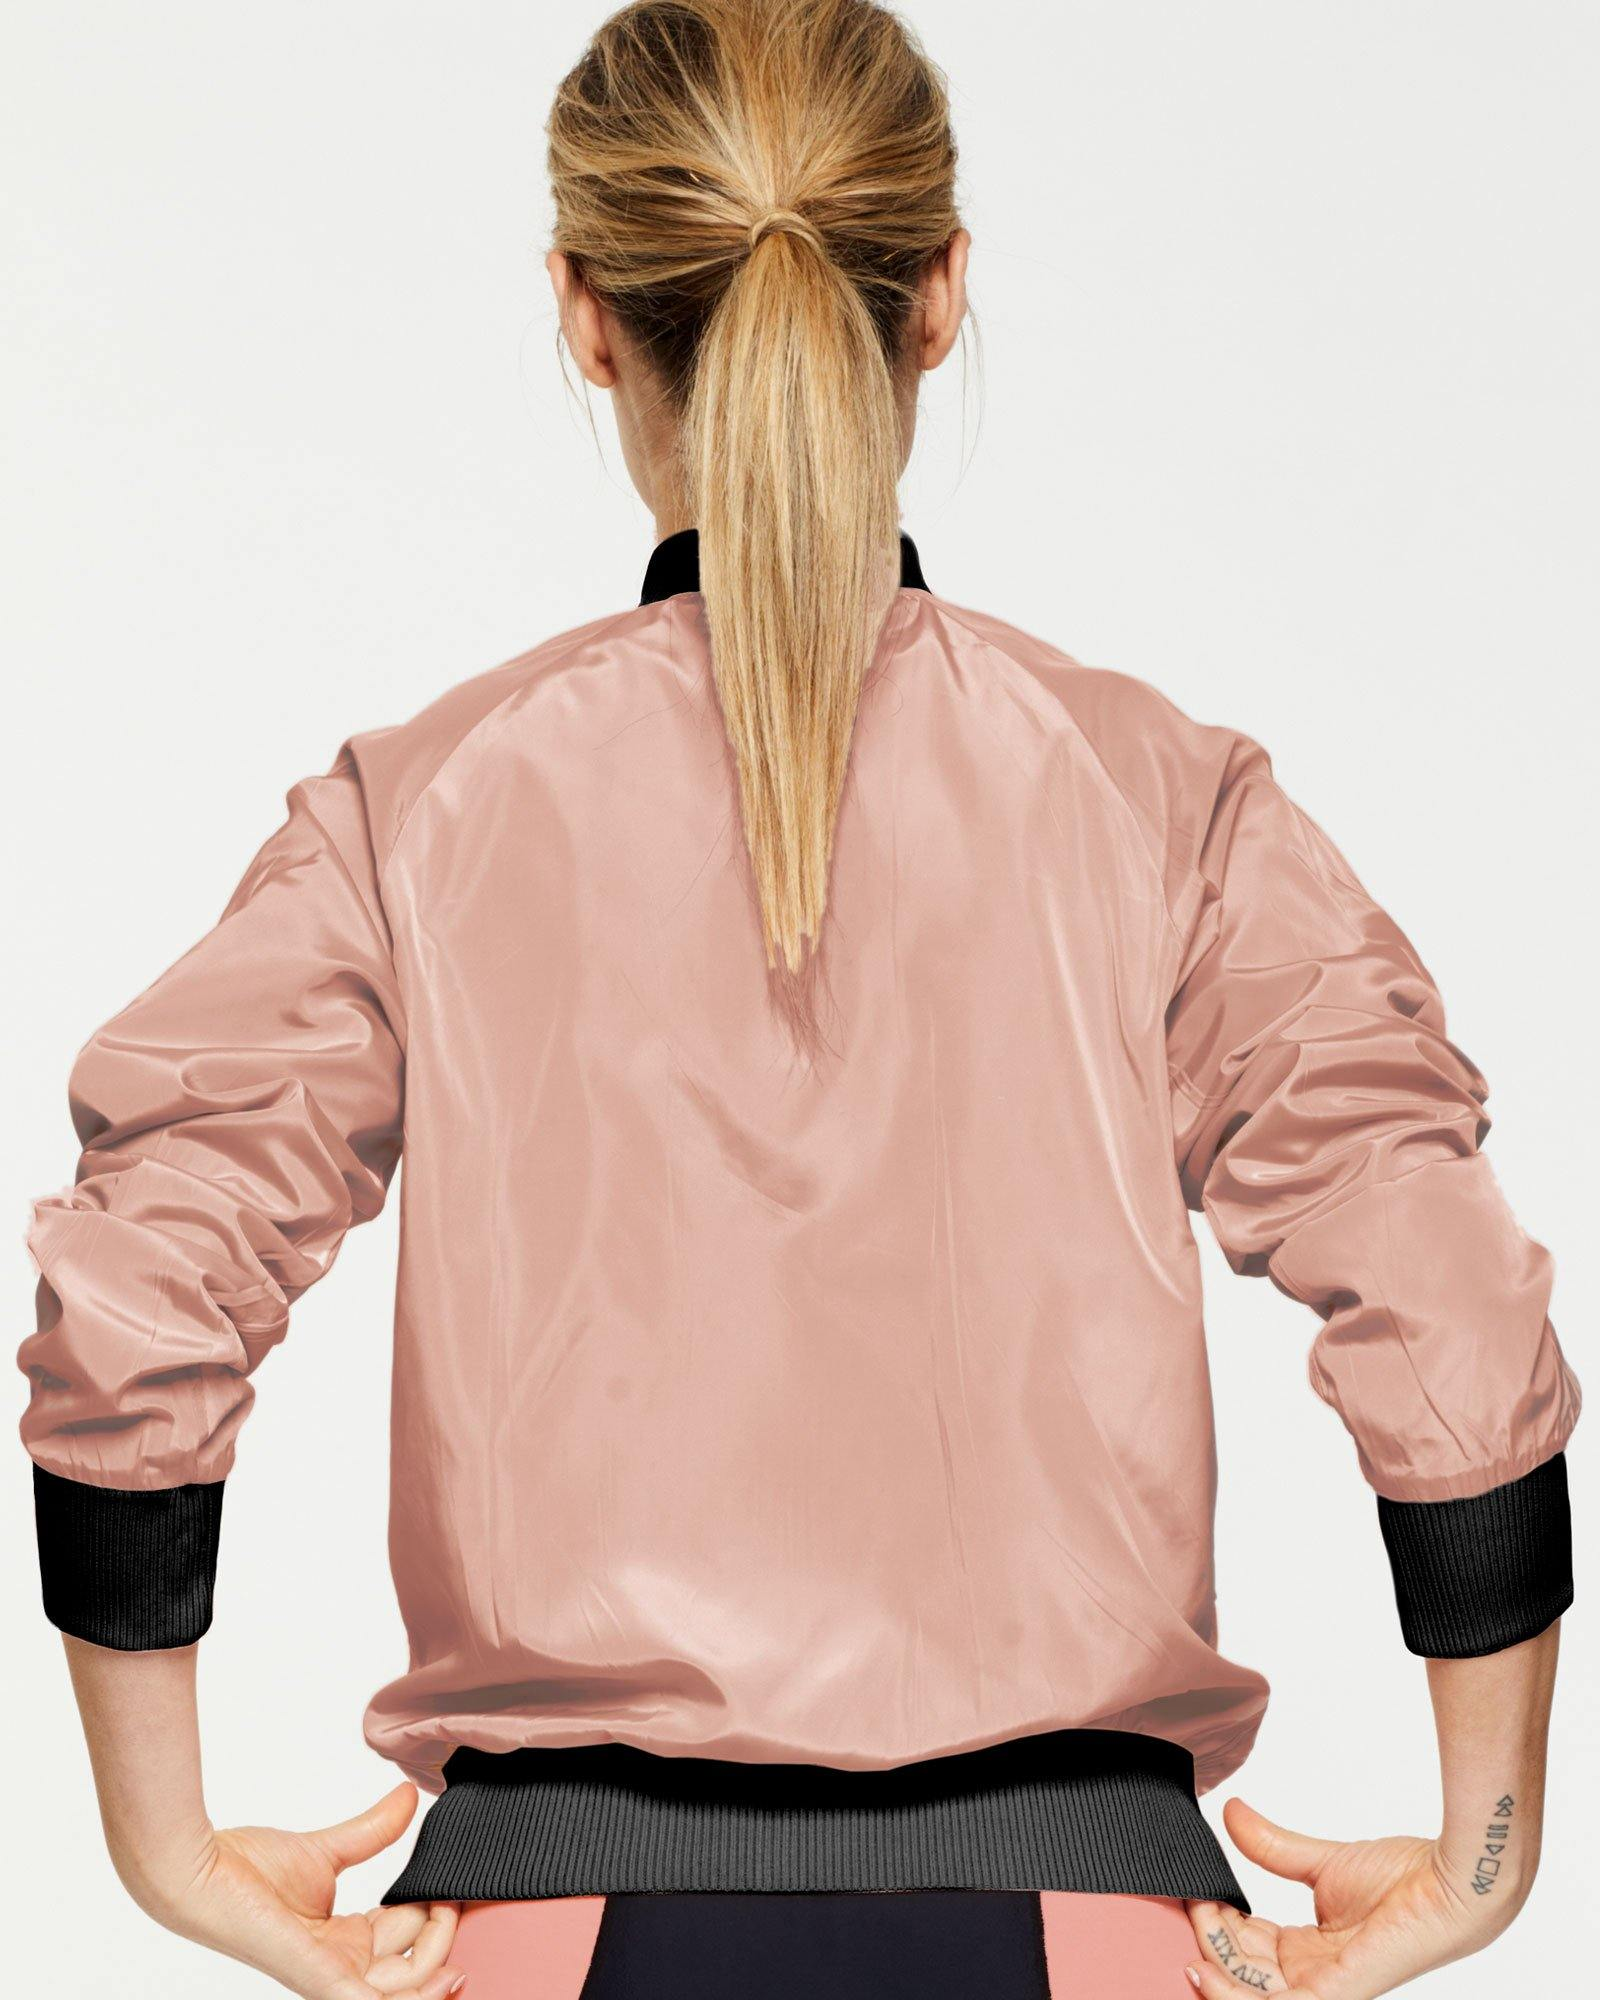 WARRIOR PIKE REVERSIBLE JACKET, BLACK & PEACH, WORN OVER TRANSVERSE 7/8 BODY SUIT, PEACH SIDE, BACK VIEW